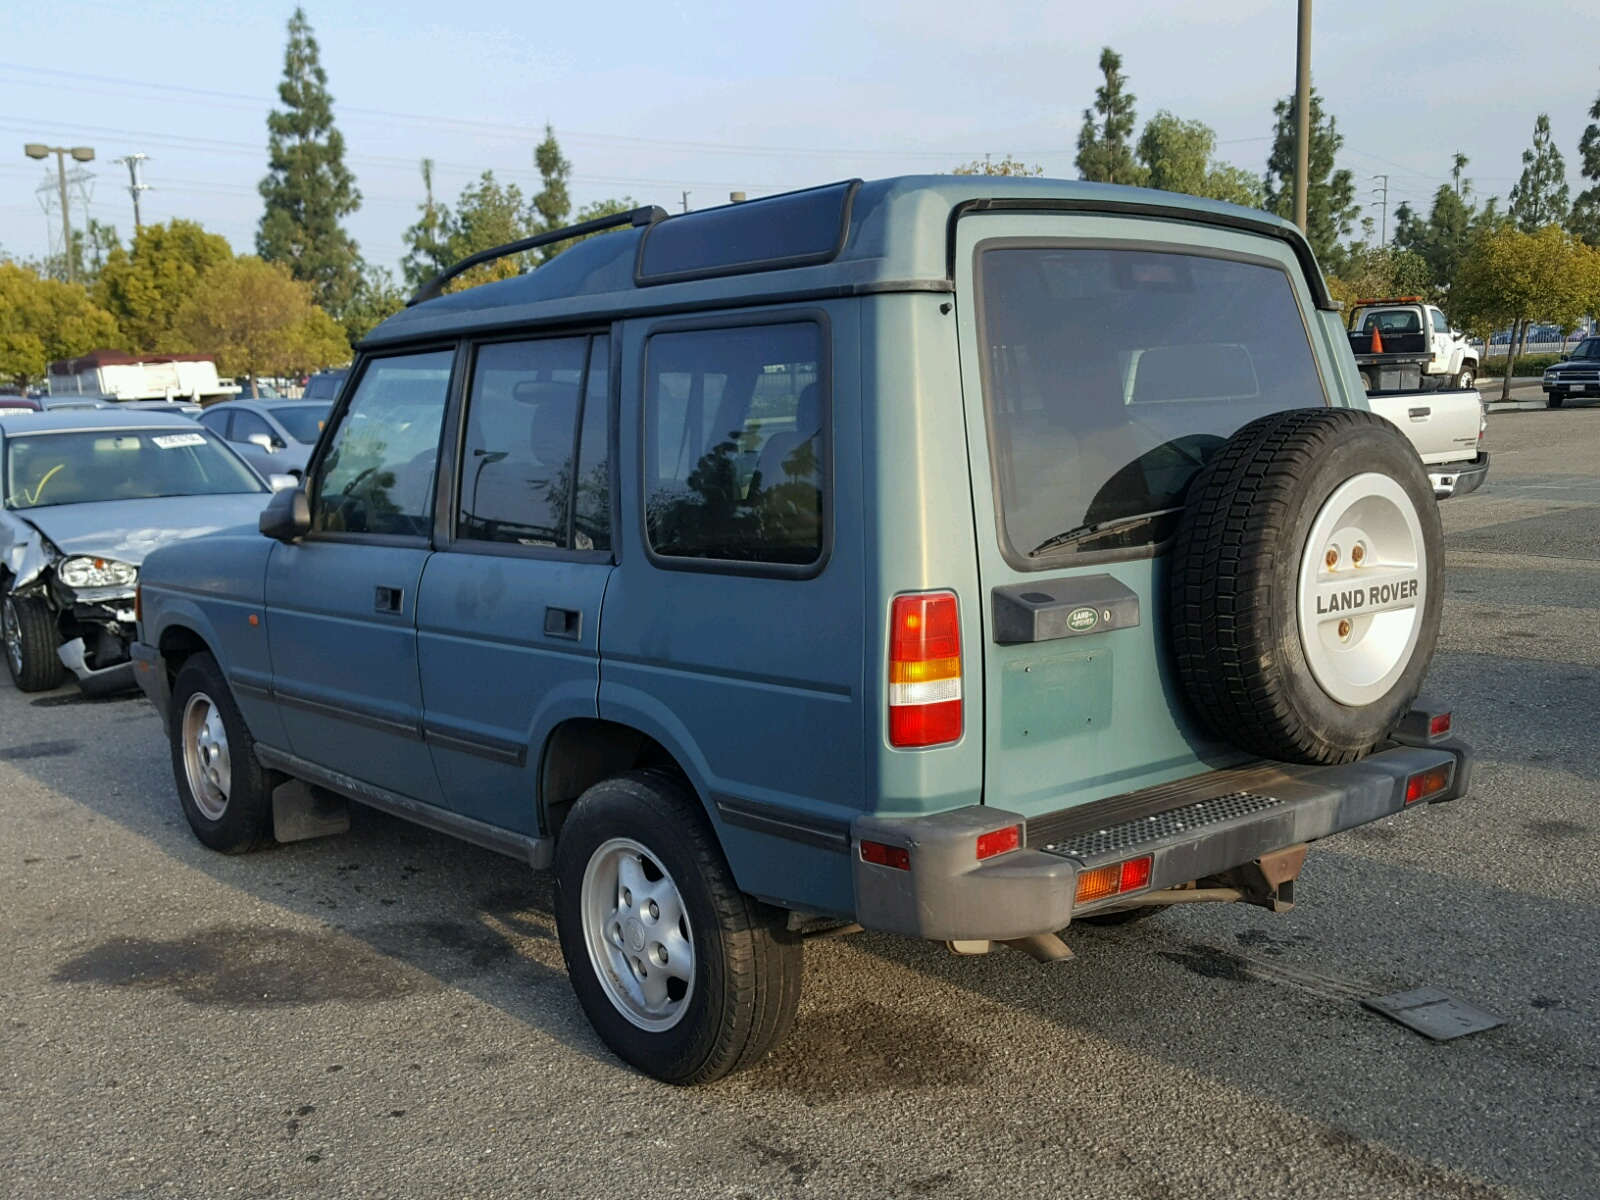 informations discovery landrover for makes photos land sale articles rover